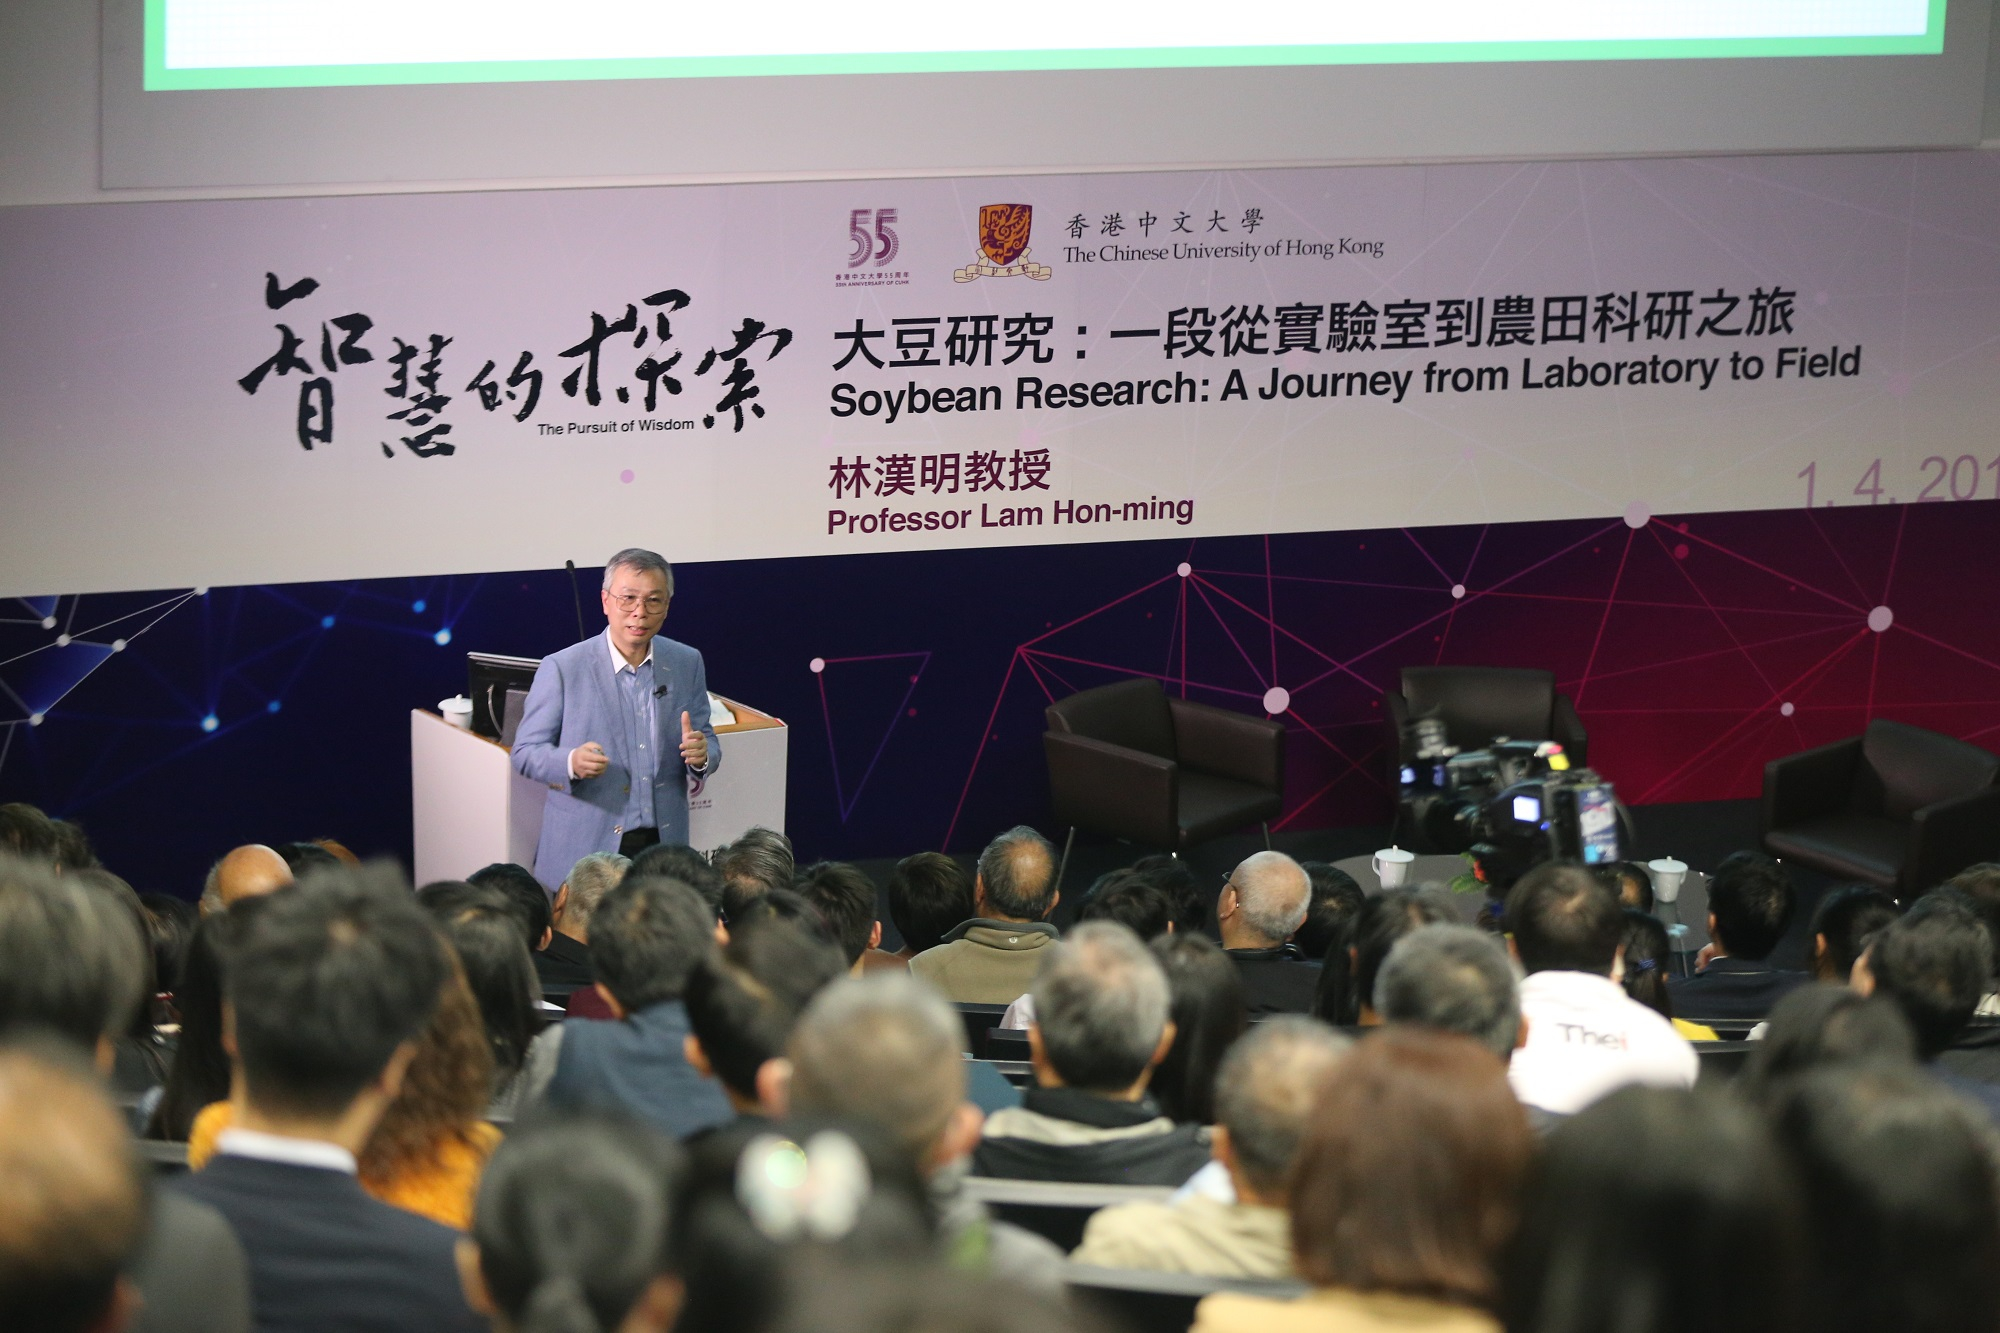 """Professor Lam Hon-Ming of CUHK speaks on the topic """"Soybean Research: A Journey from Laboratory to Field"""" in the third lecture of """"The Pursuit of Wisdom"""" Public Lecture Series."""